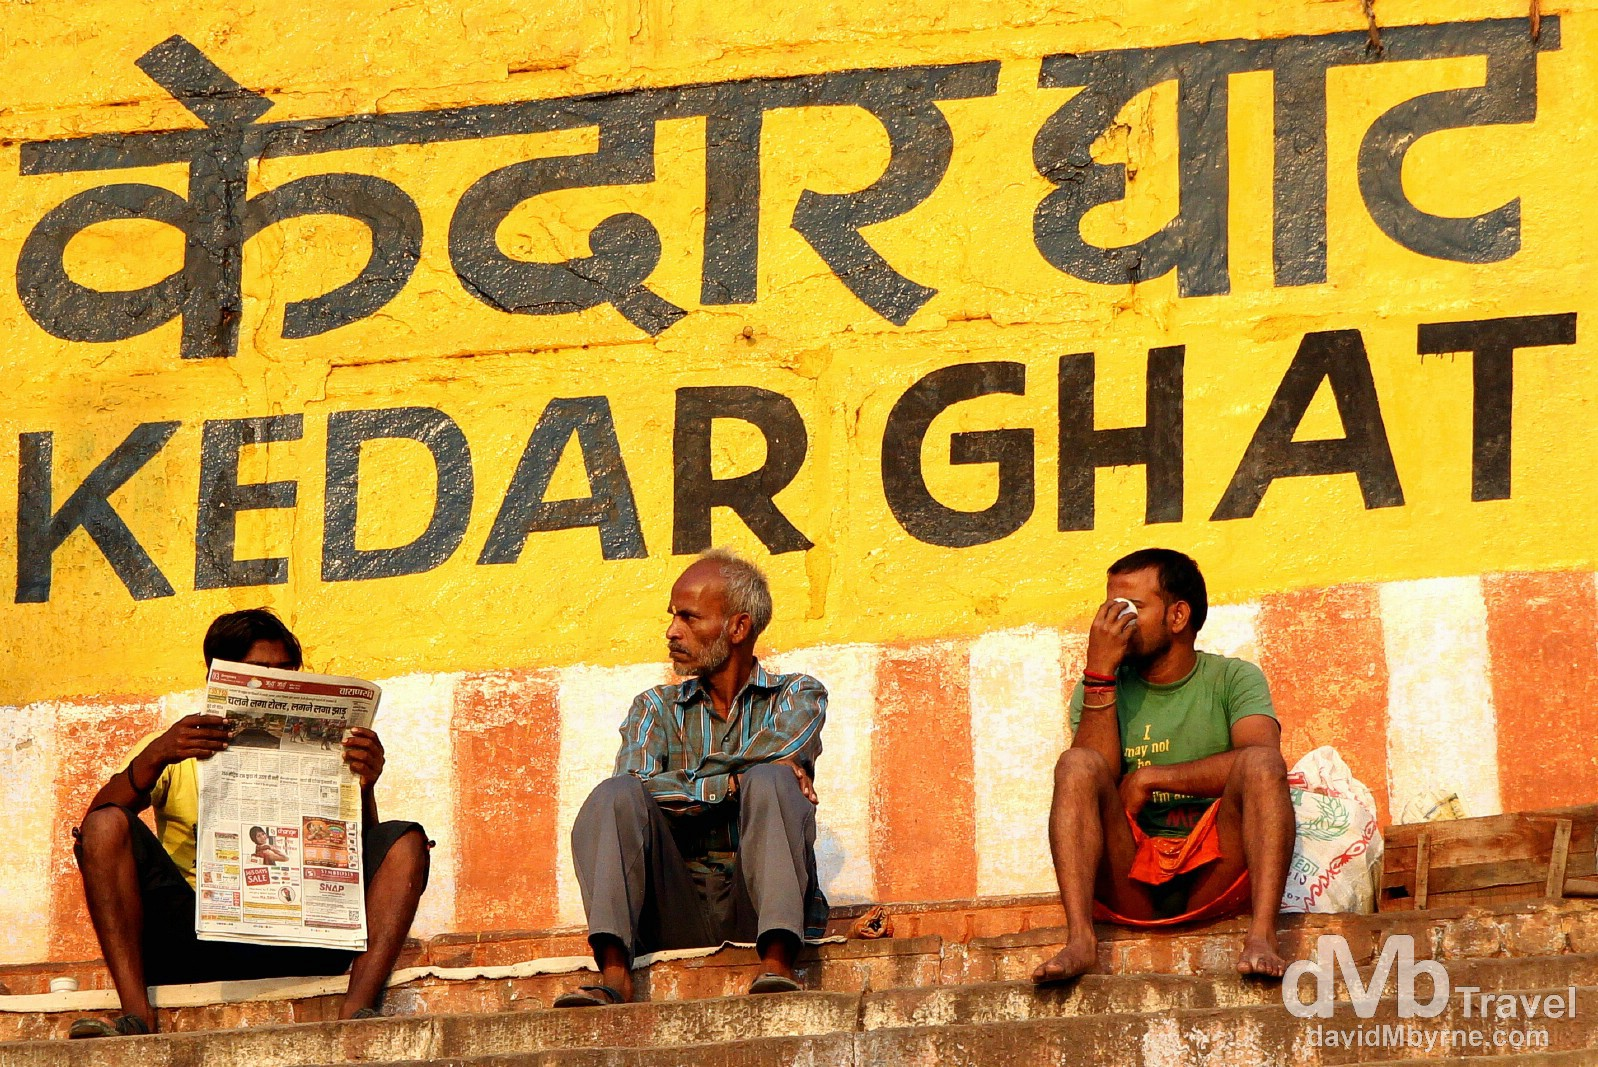 Sitting by the Kedar Ghat by the River Ganges in Varanasi, Uttar Pradesh, India. October 14th 2012.